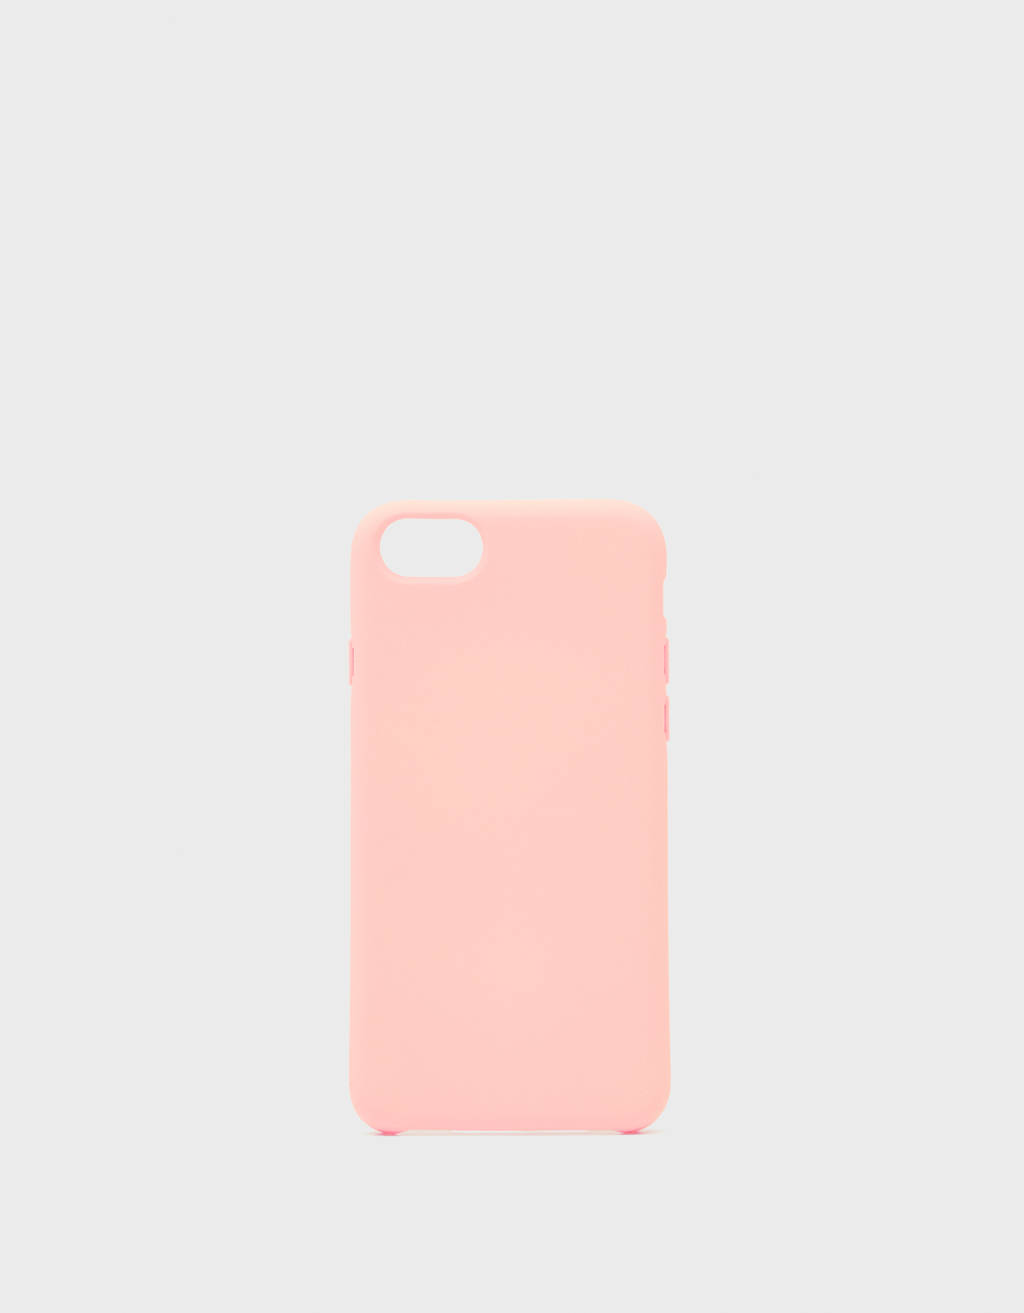 Carcasa monocolor iPhone 6 / 6S / 7 / 8